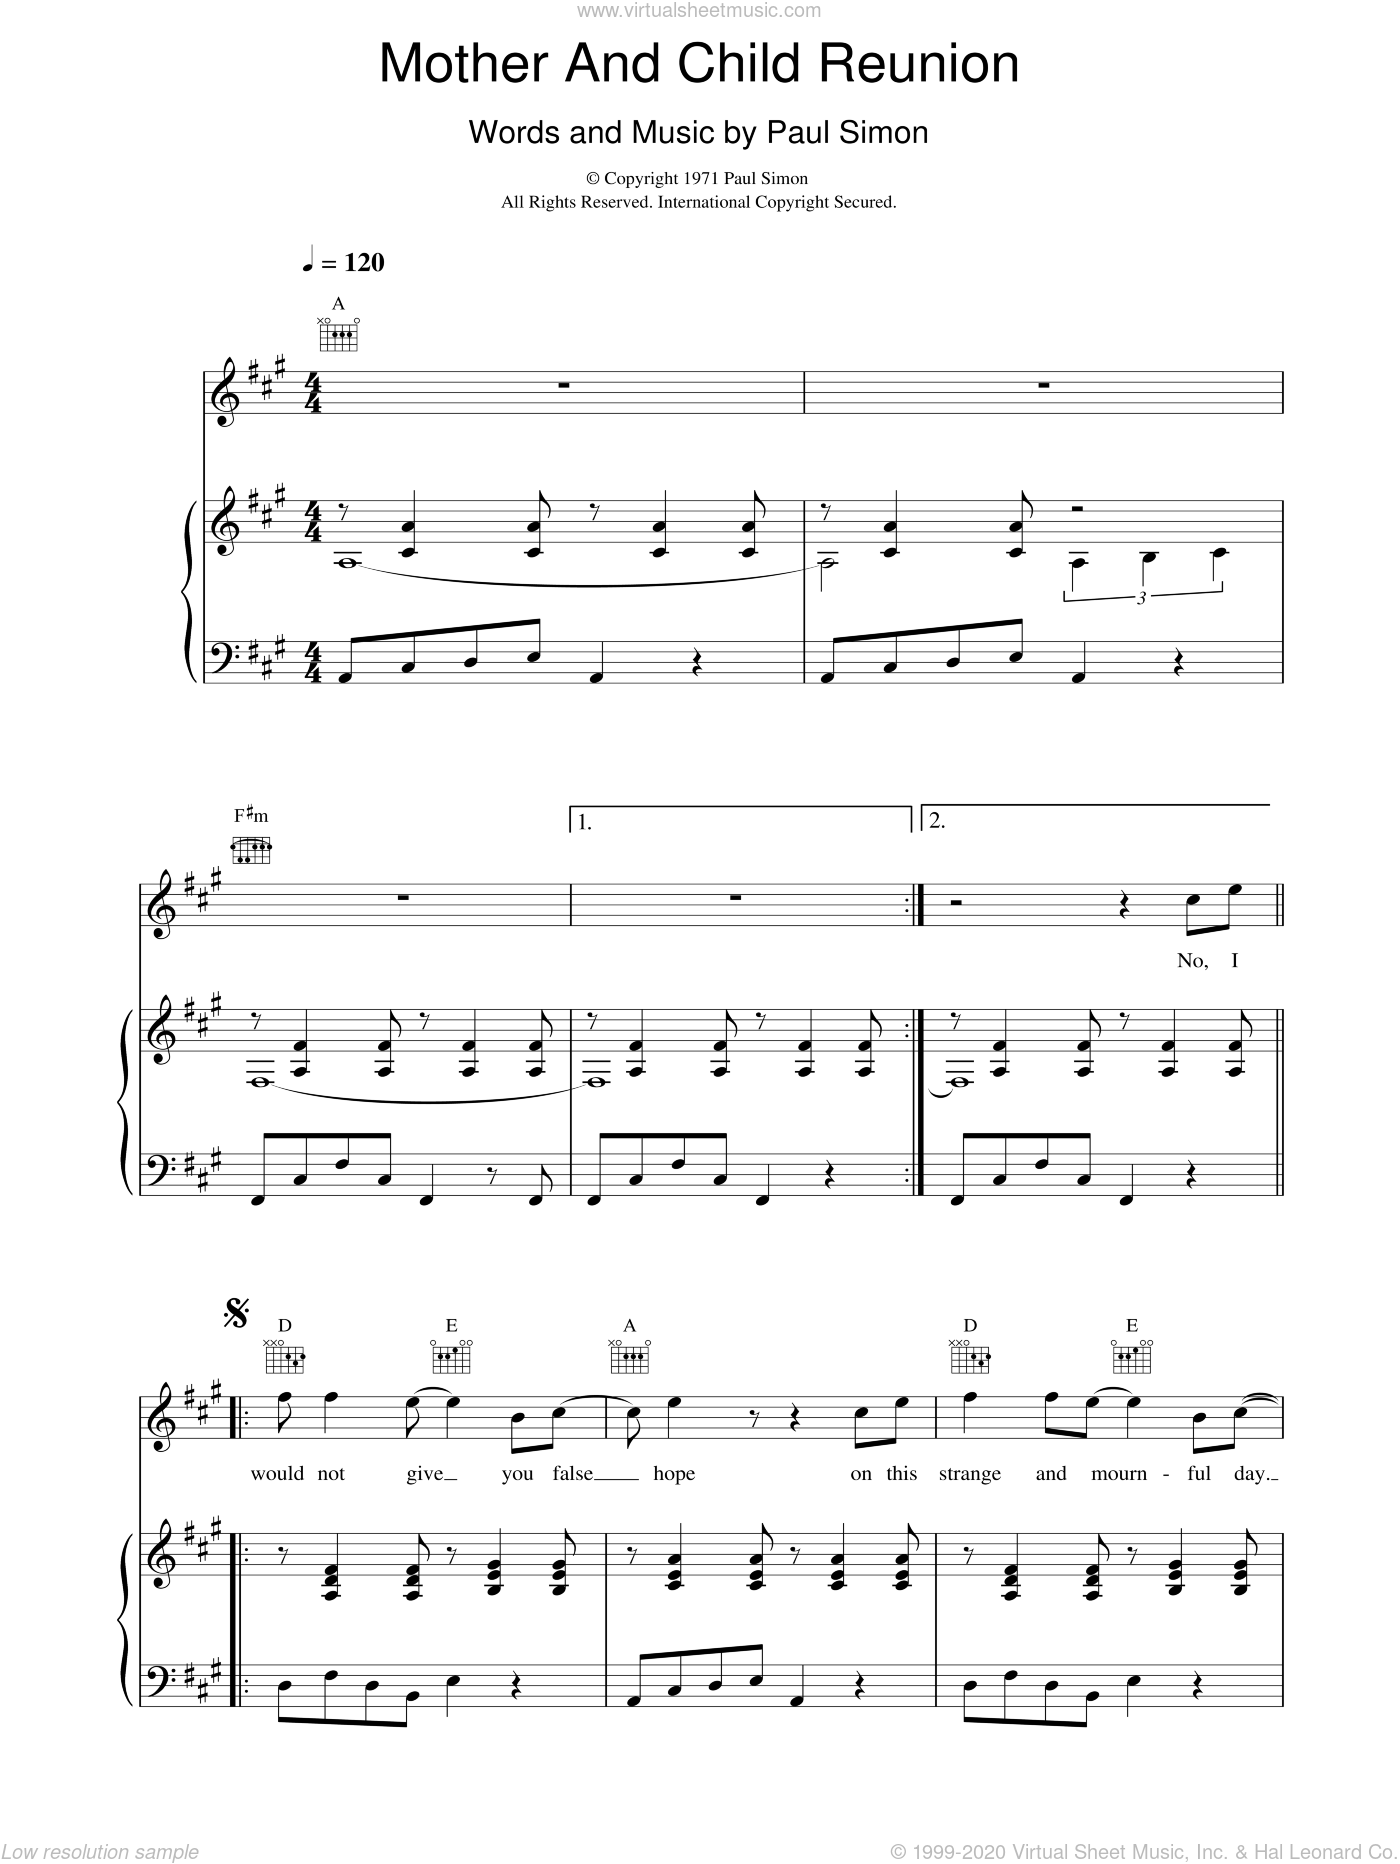 Mother And Child Reunion sheet music for voice, piano or guitar by Paul Simon